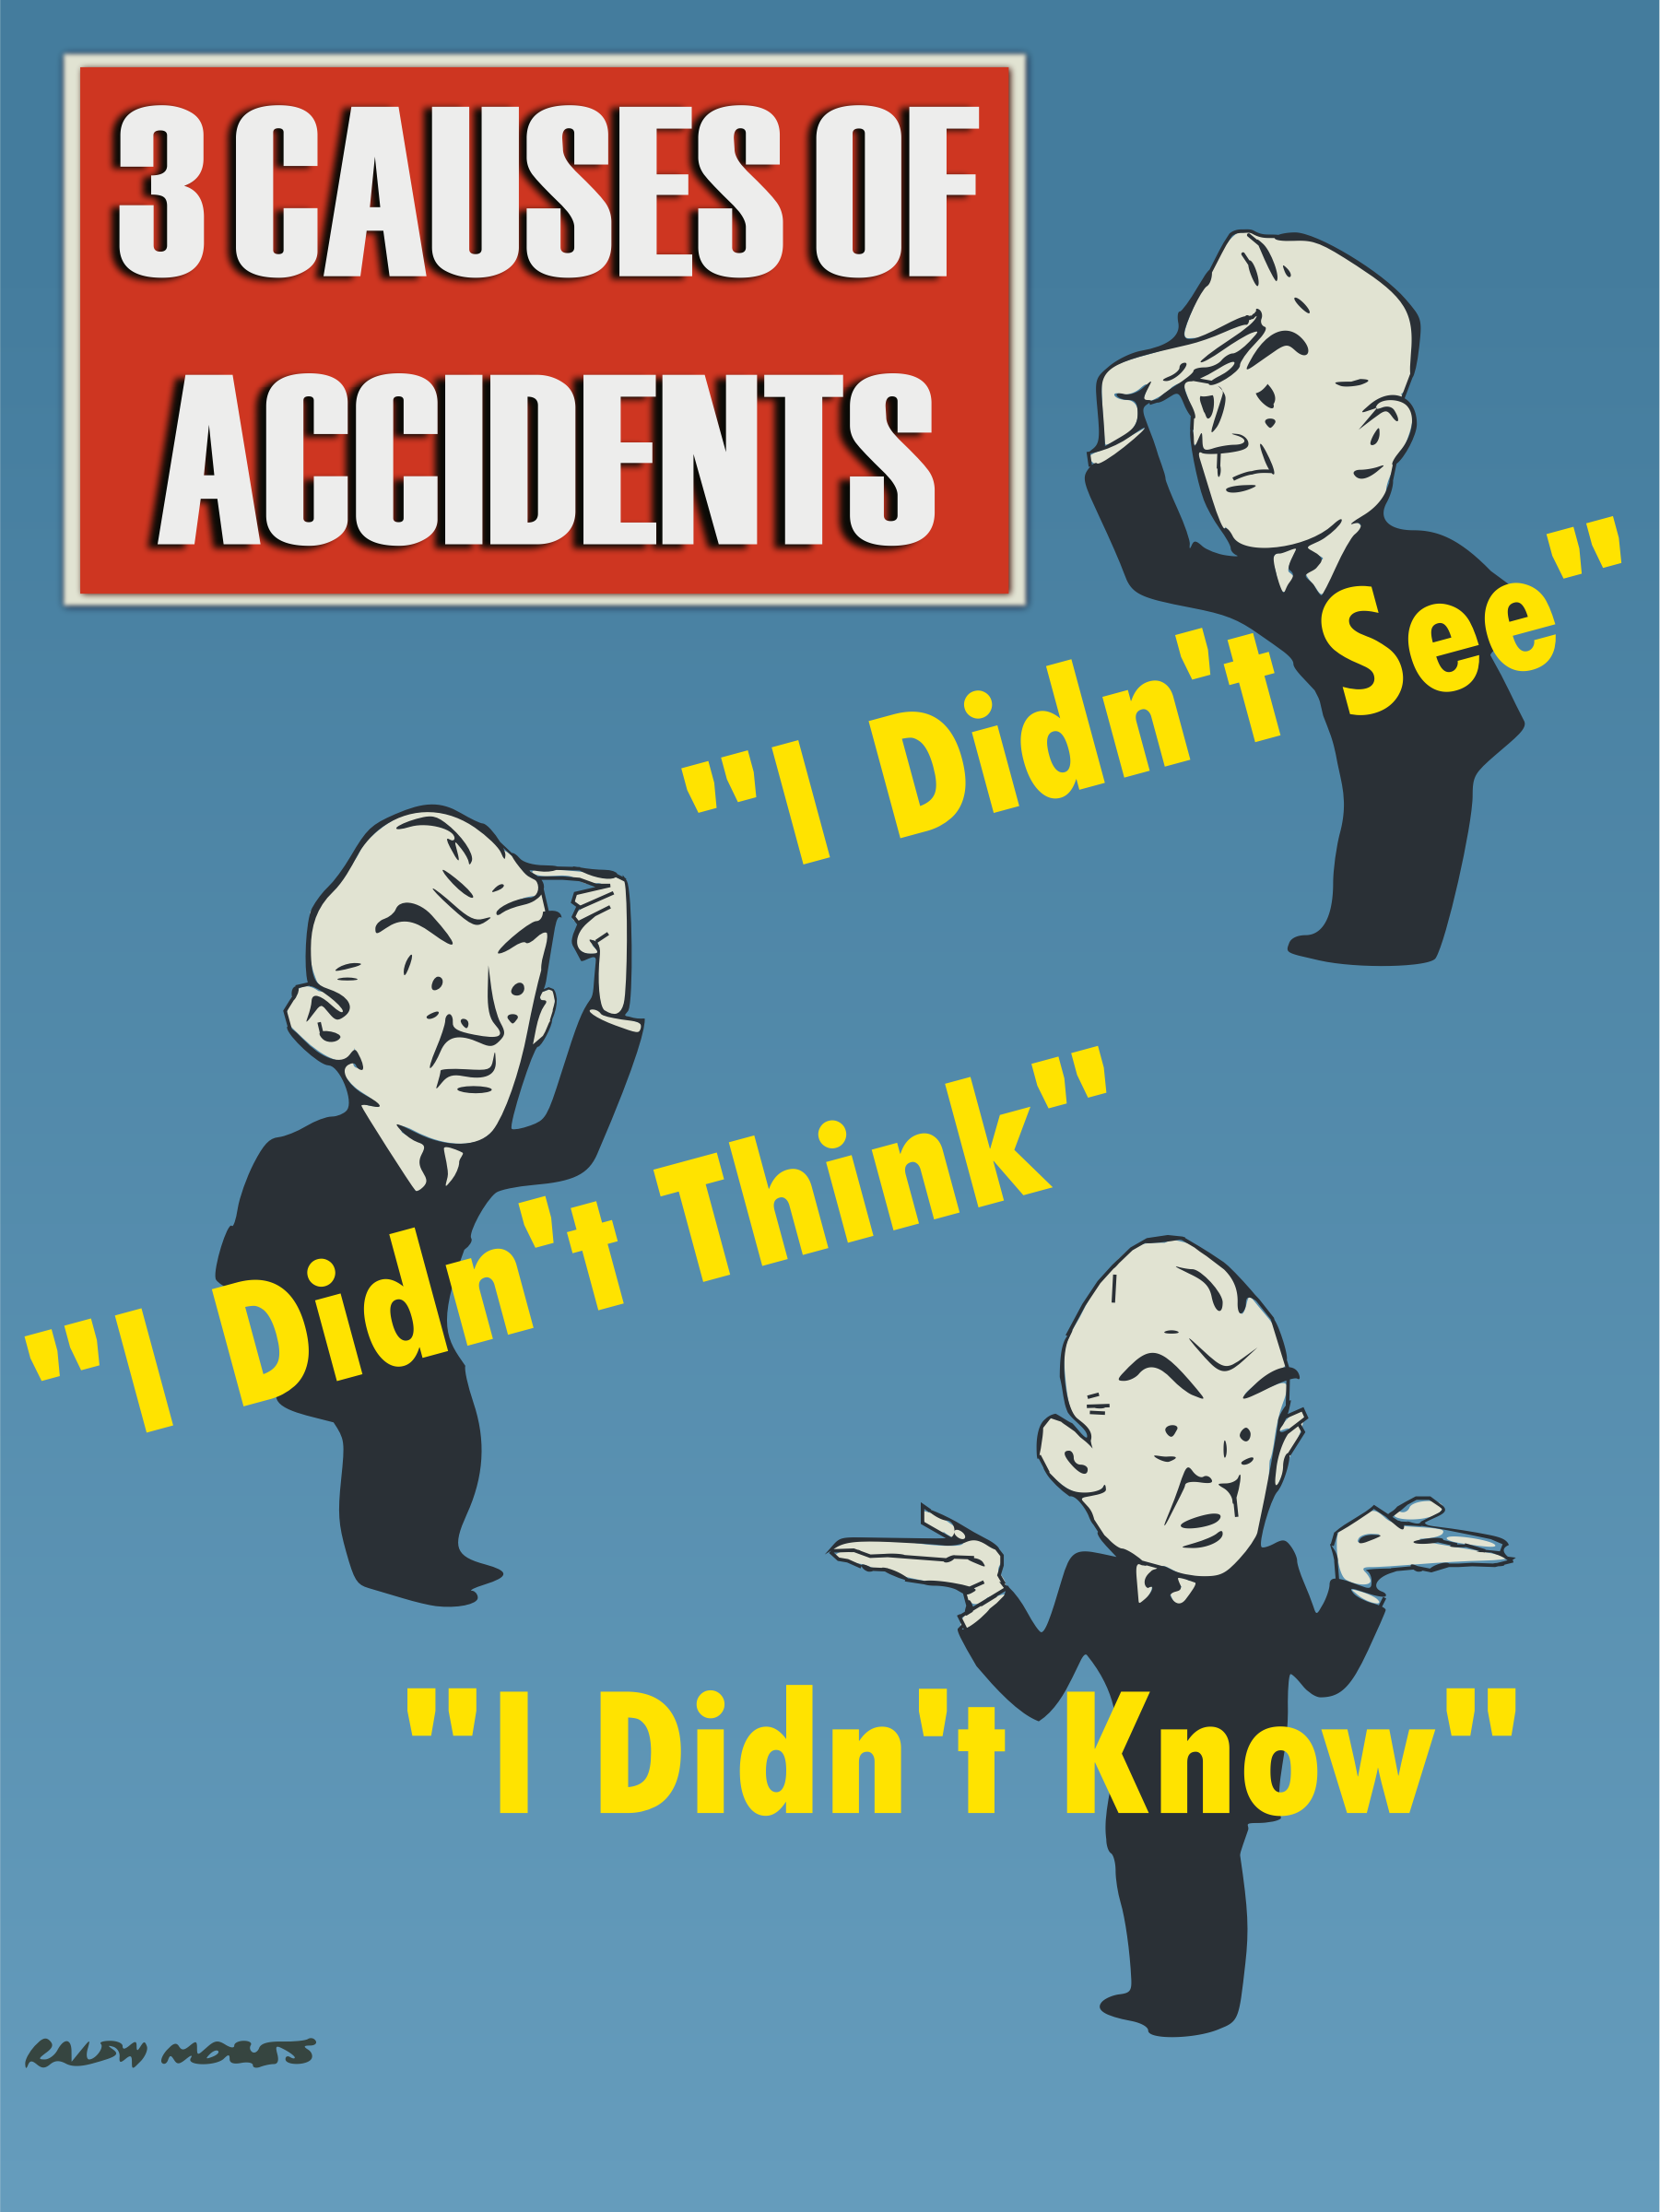 3 Causes of Accidents by pyCat